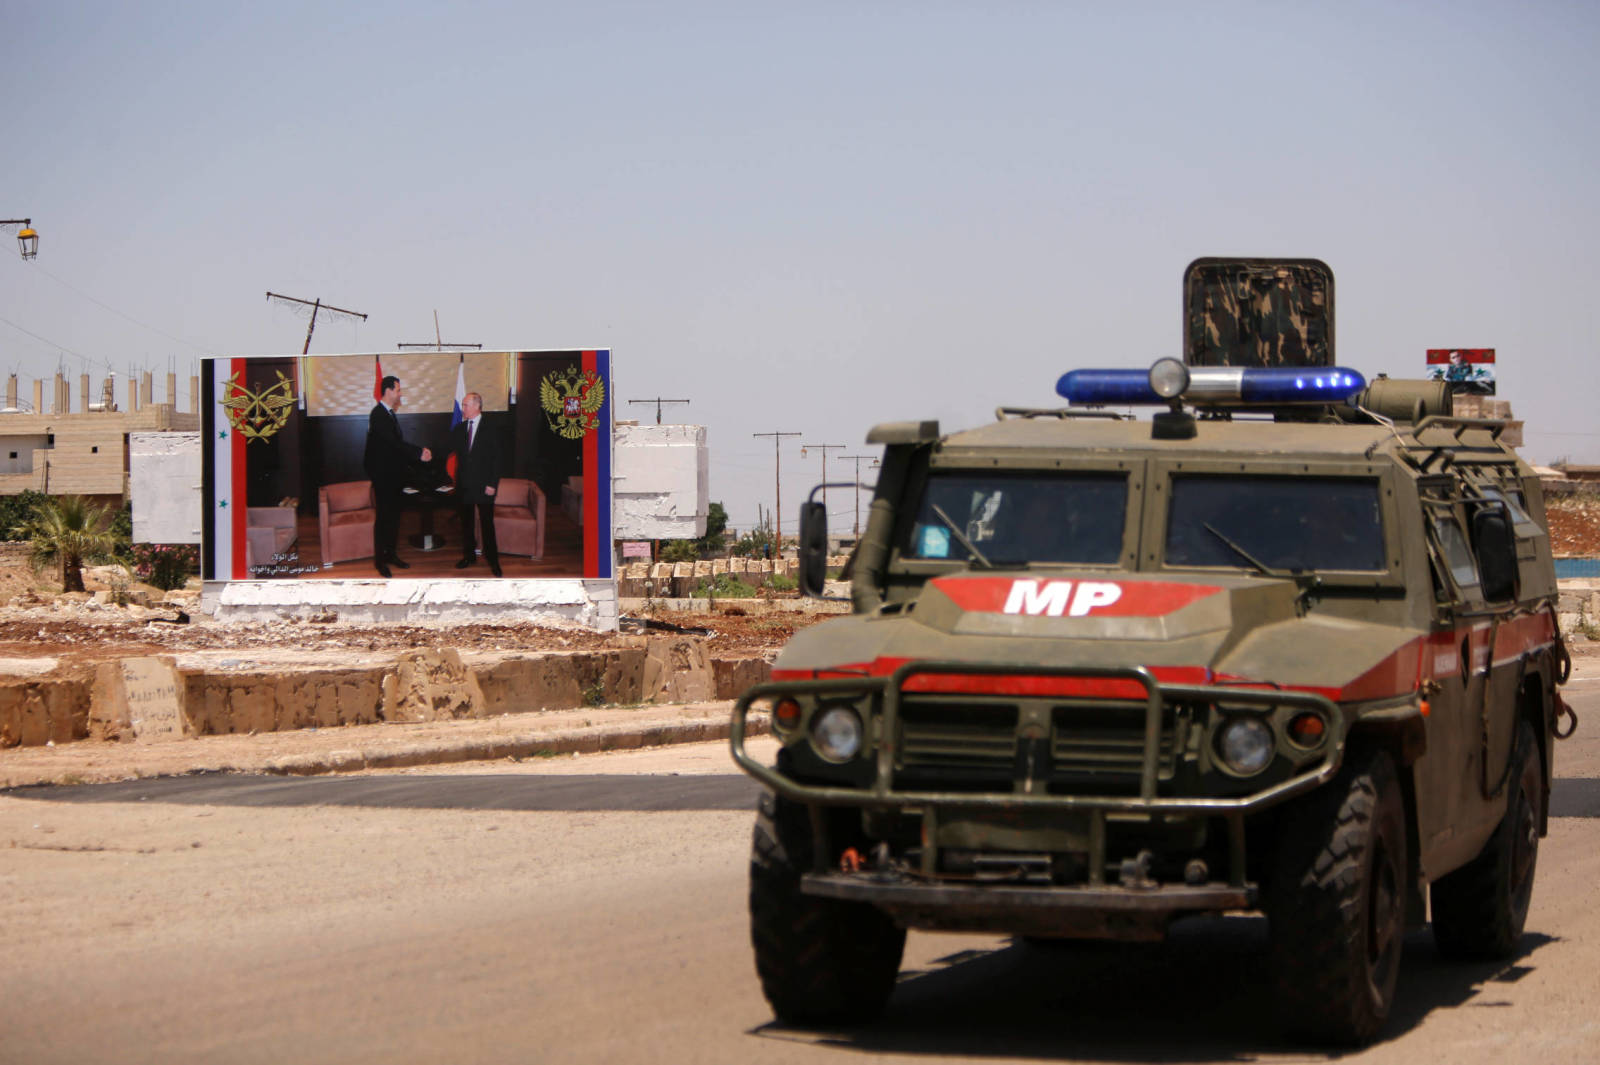 Russian military vehicle near poster of Bashar al-Assad and Putin in Aleppo - June 2018 (Reuters)